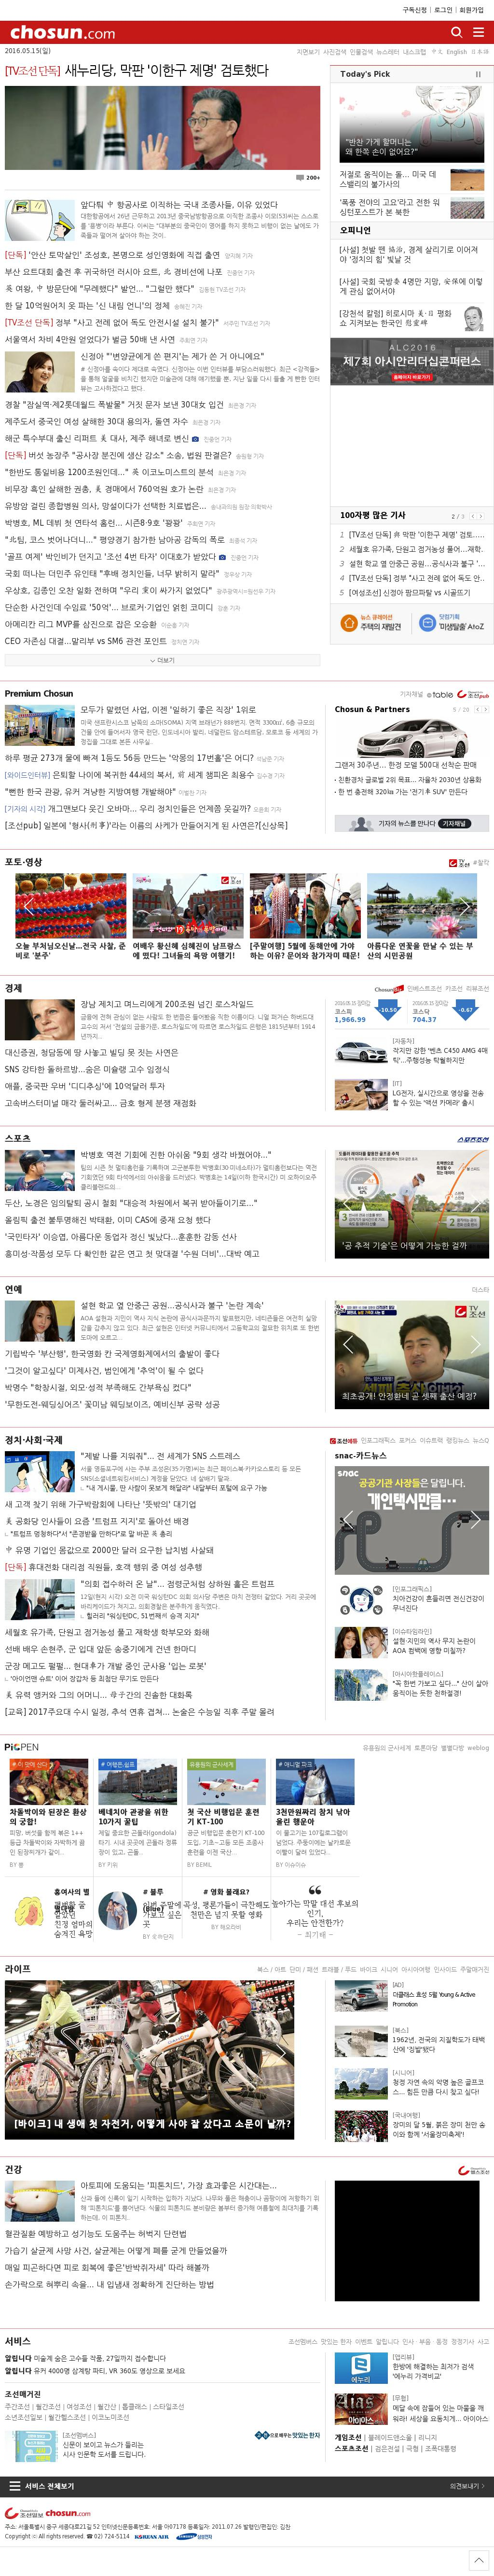 chosun.com at Saturday May 14, 2016, 10:01 p.m. UTC